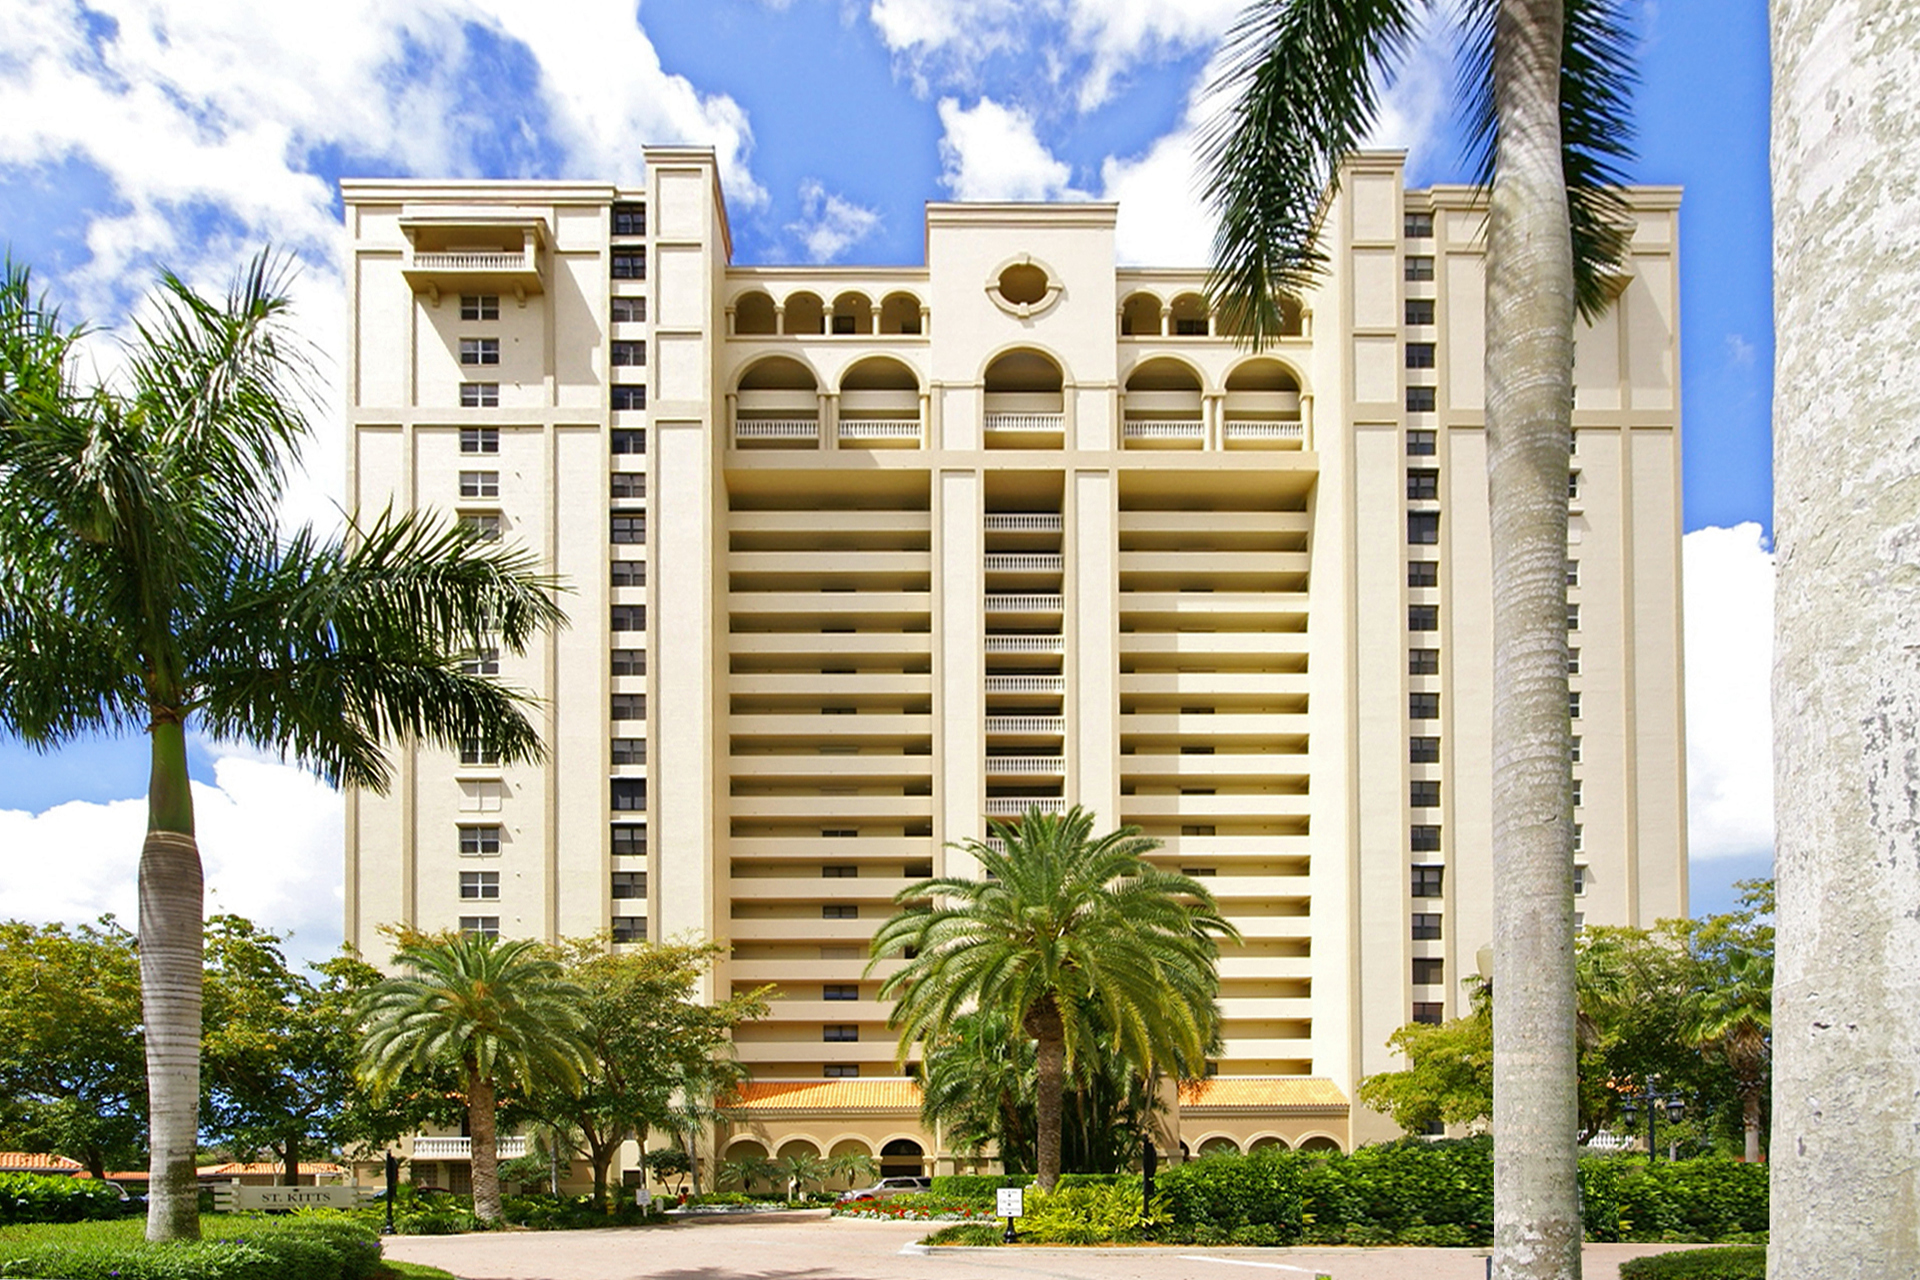 St Kitts Pelican Bay Condos for Sale